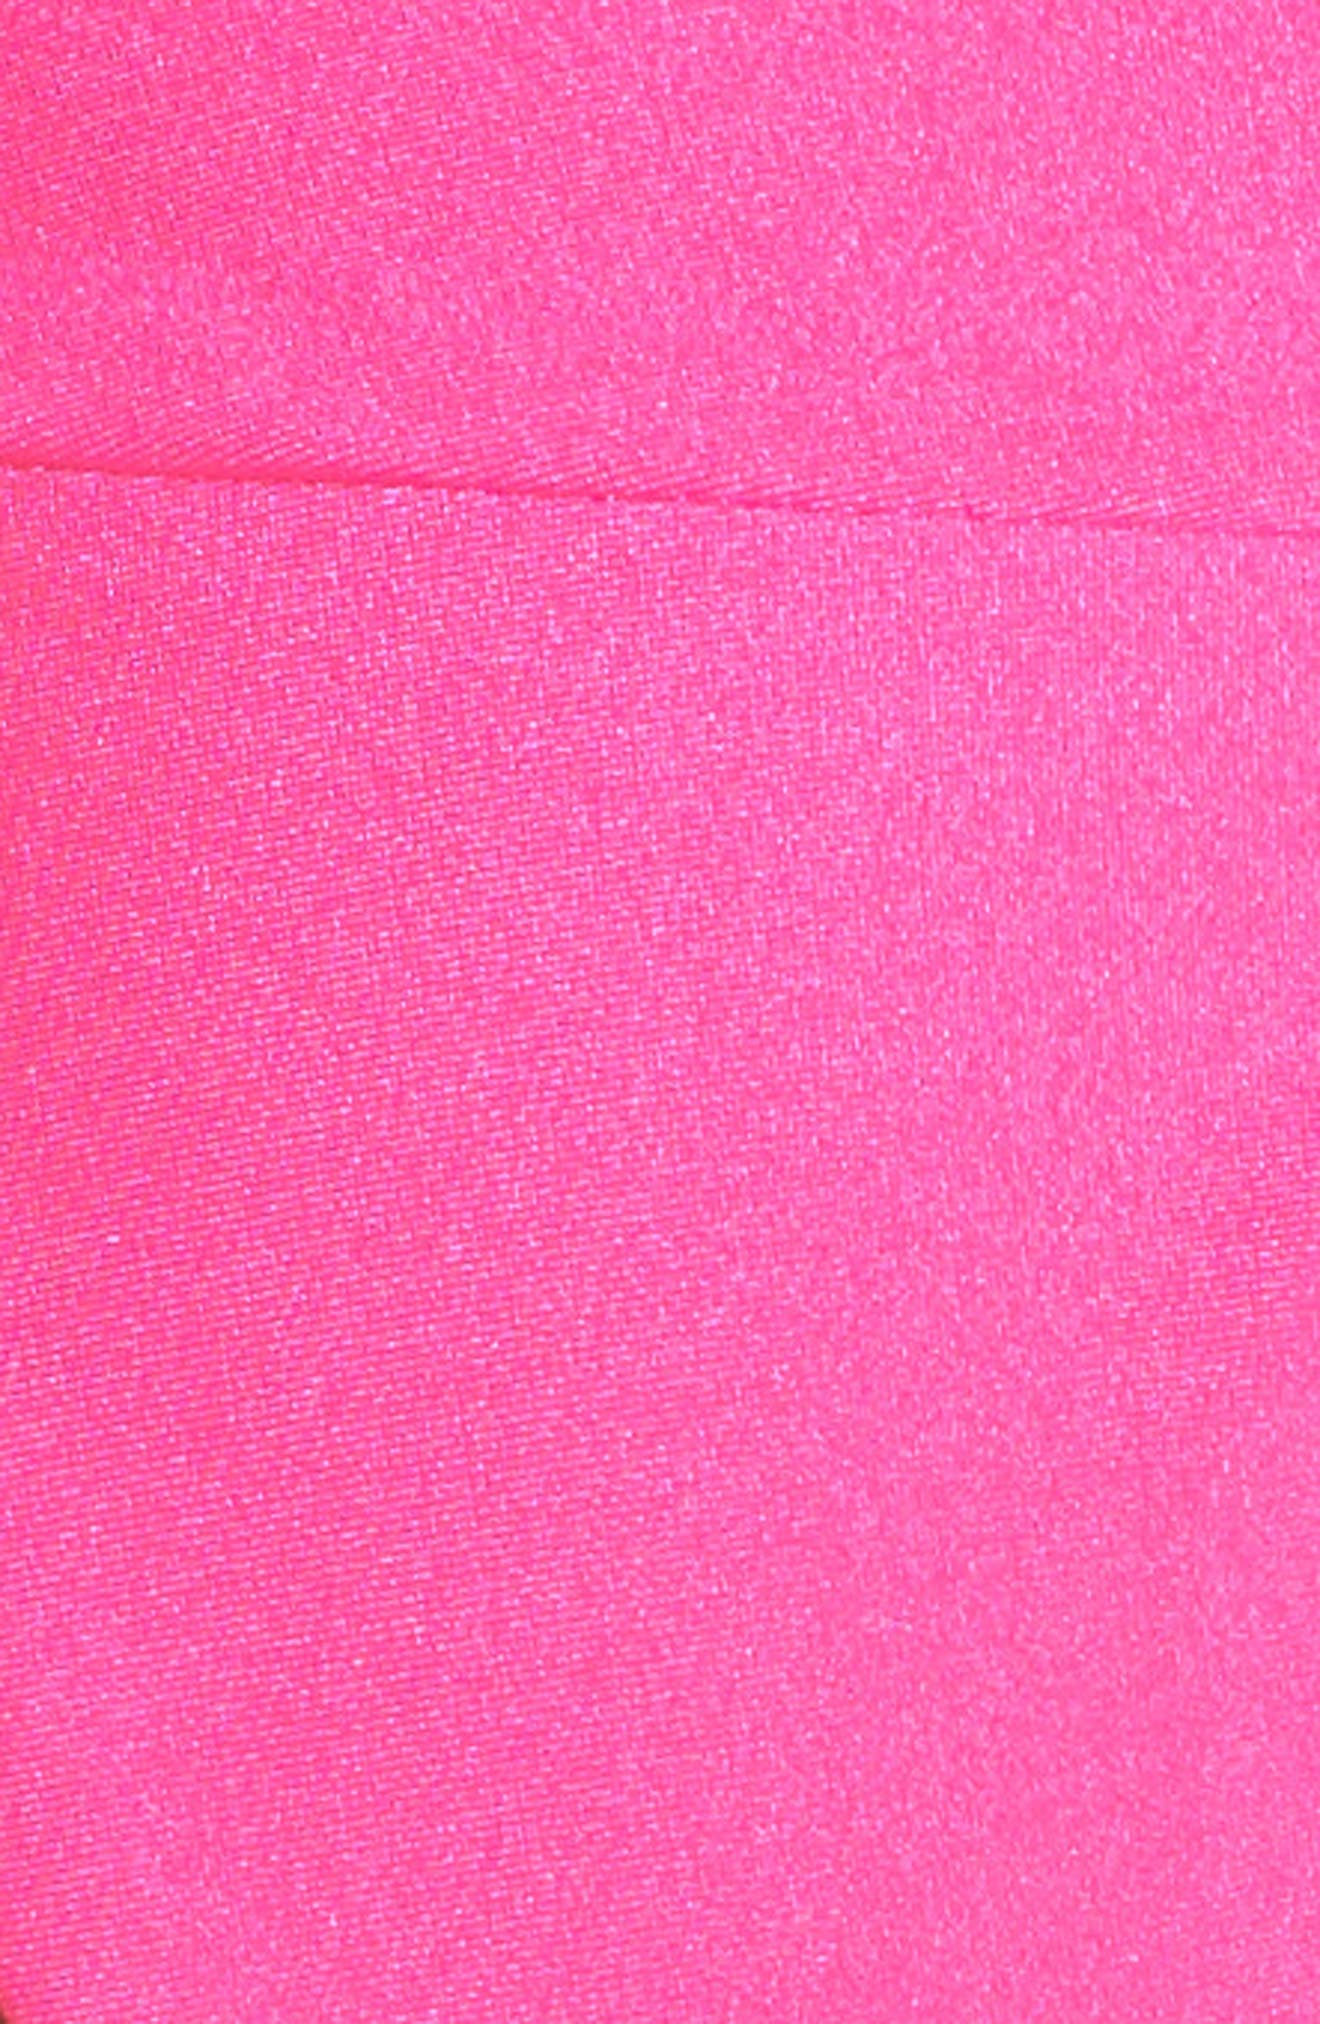 Tubular Solid Bikini Bottoms,                             Alternate thumbnail 8, color,                             Miami Pink